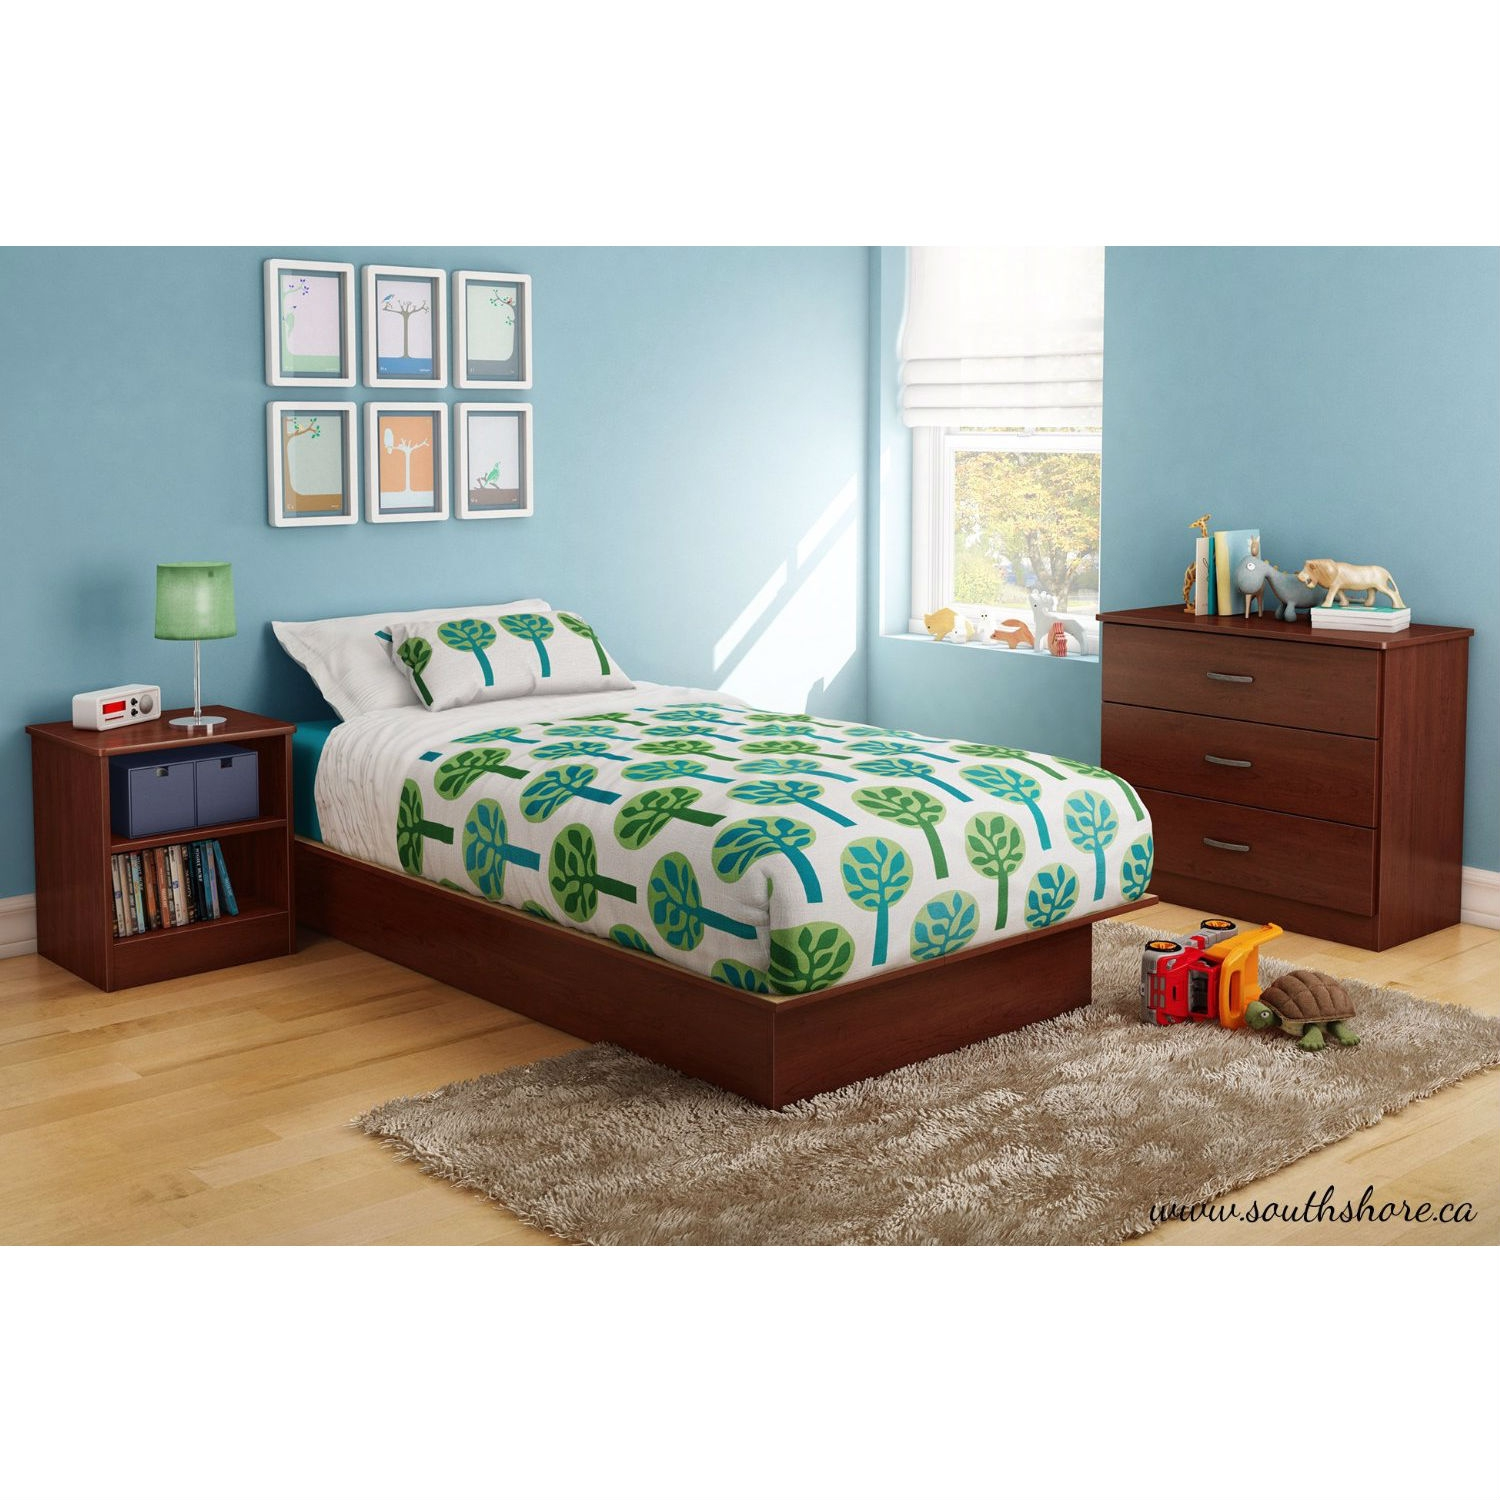 twin size platform bed frame in royal cherry wood finish  - retail price